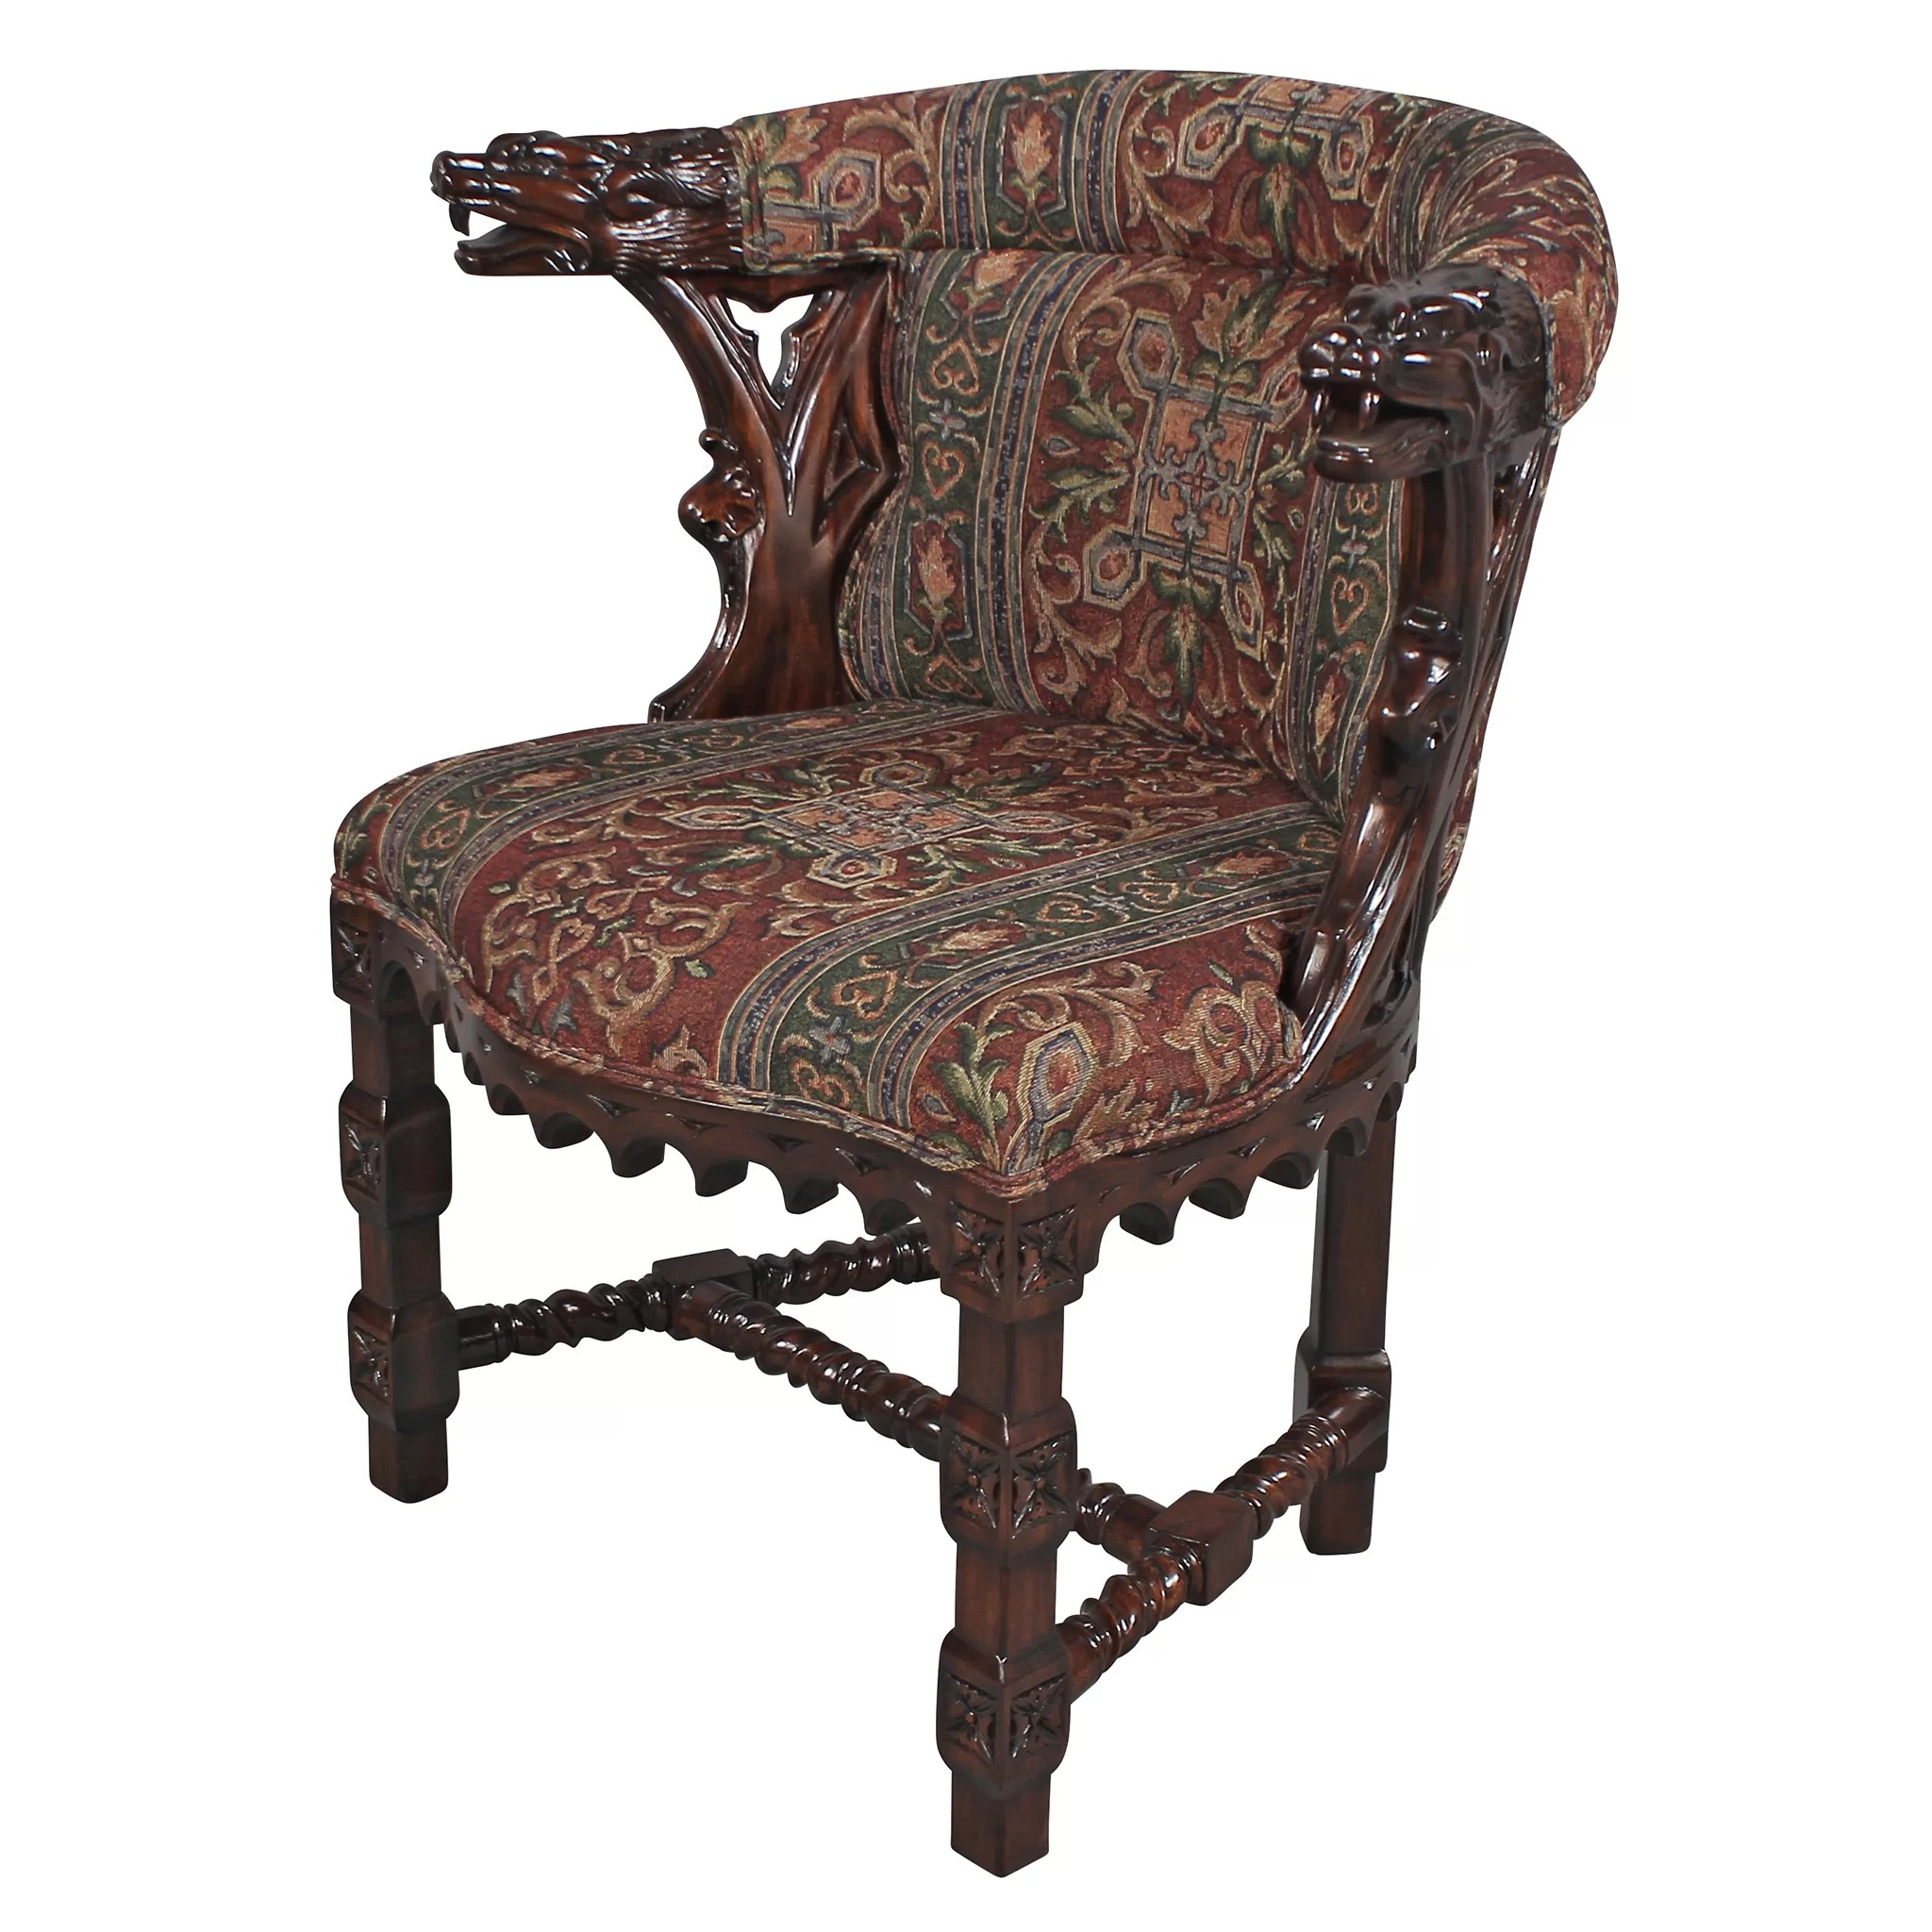 Dragon Chair Design Toscano Kingsman Manor Dragon Fabric Barrel Chair